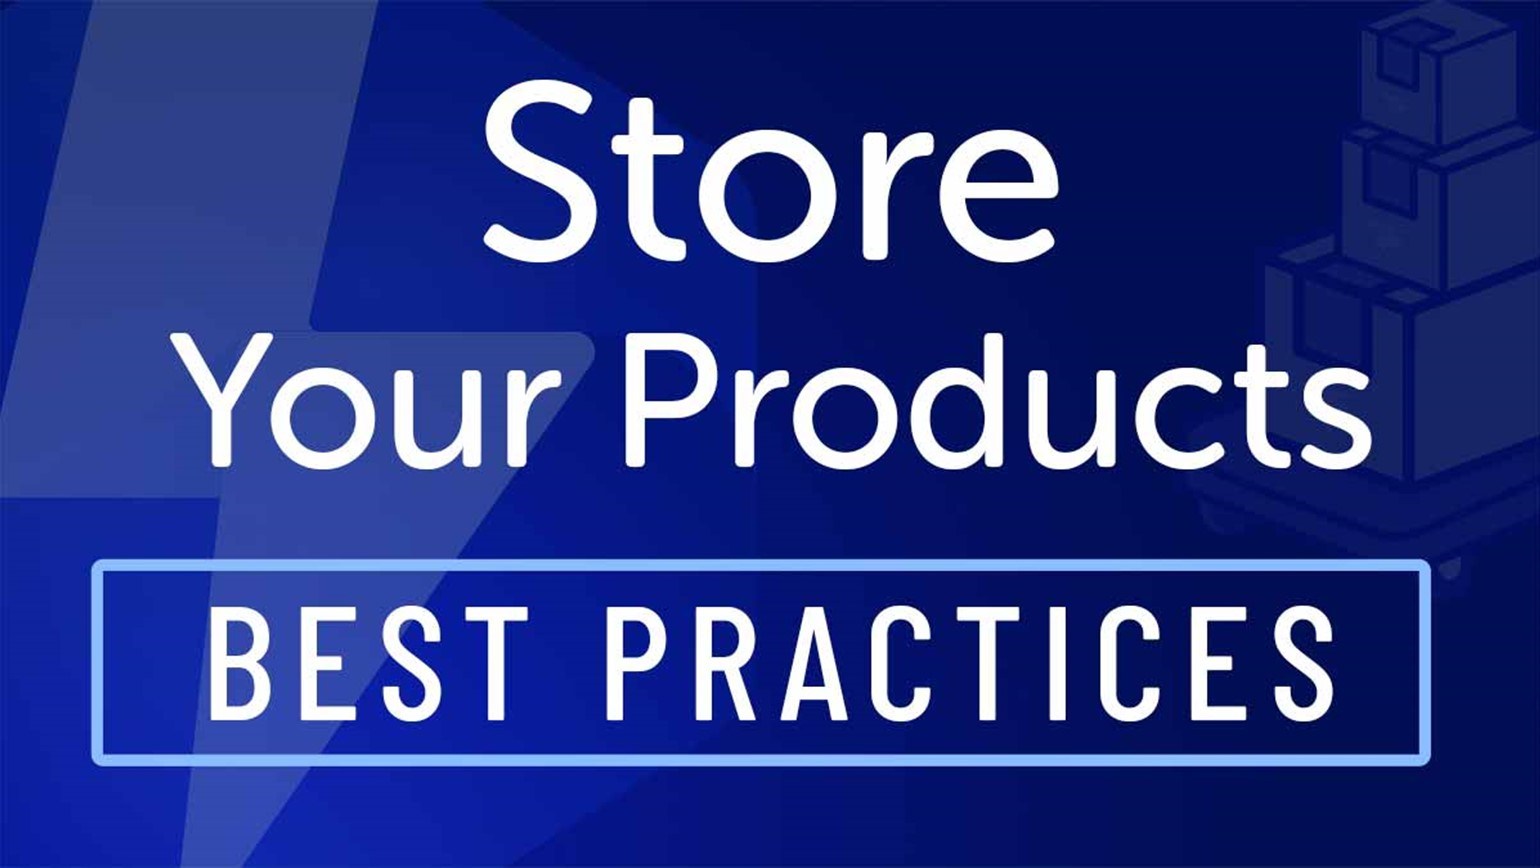 Store Your Products: Best Practices